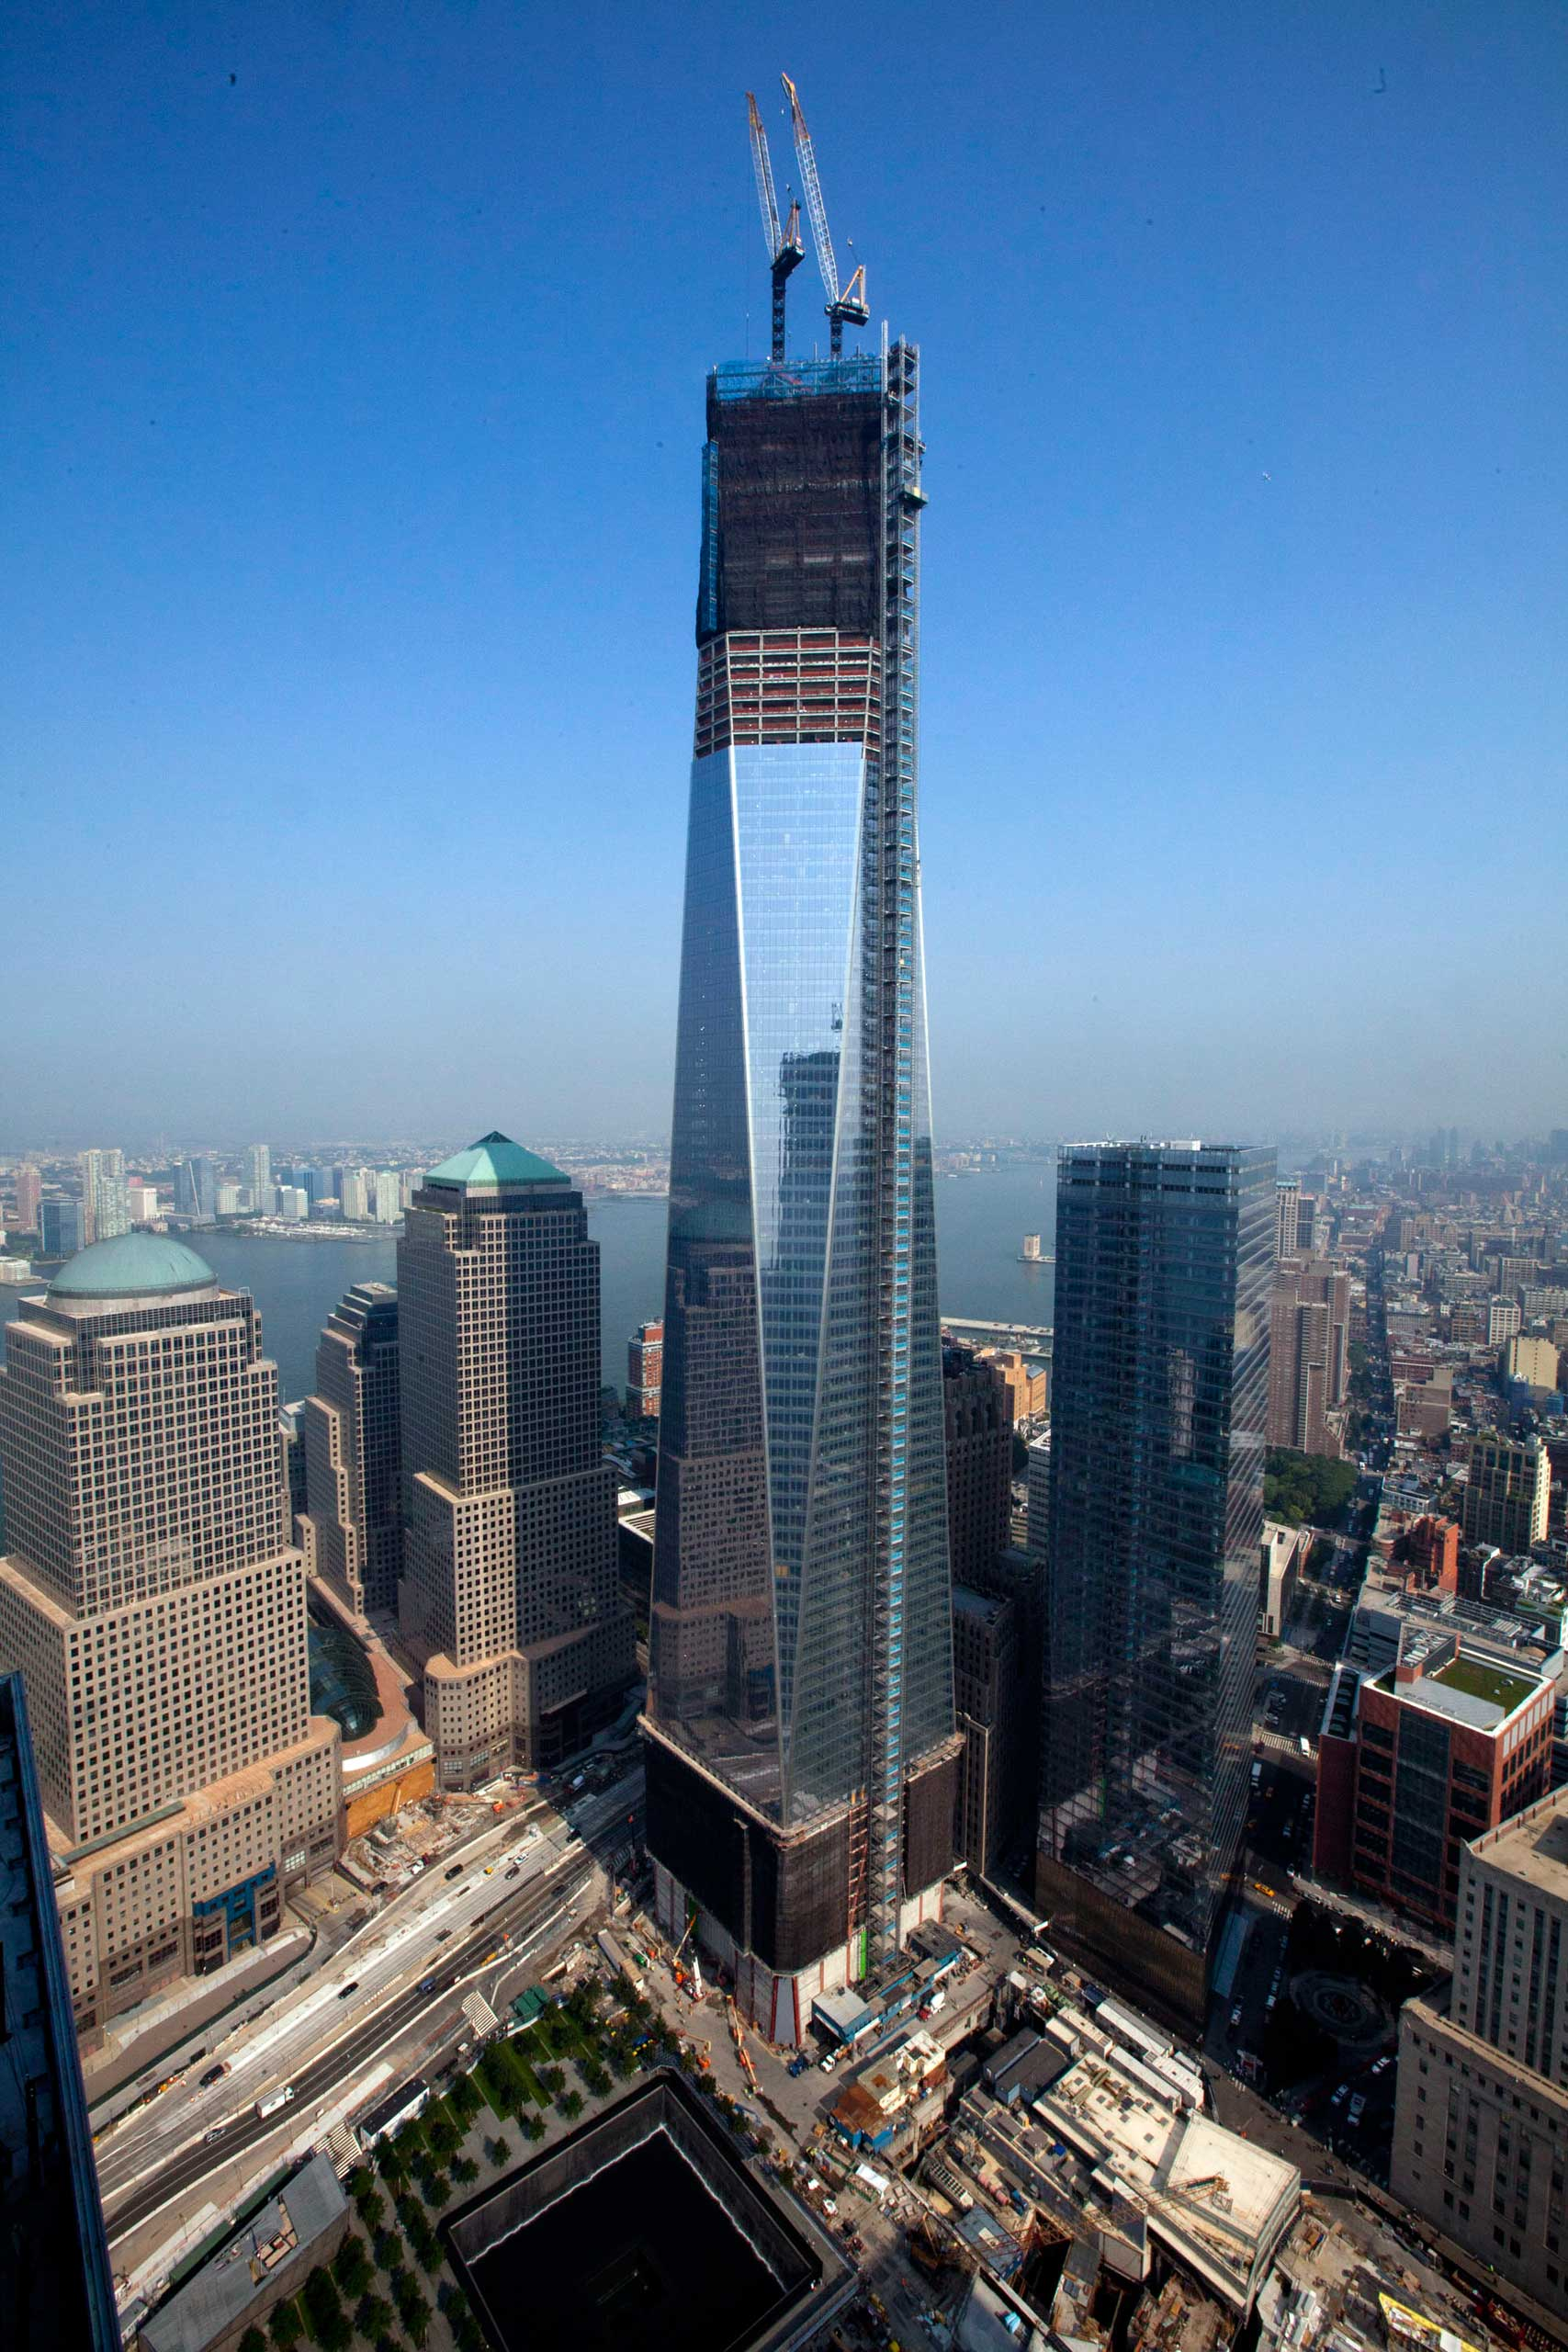 2012 The One World Trade Center building is seen from the 60th floor of 4 World Trade Center in New York on Sept. 7, 2012.